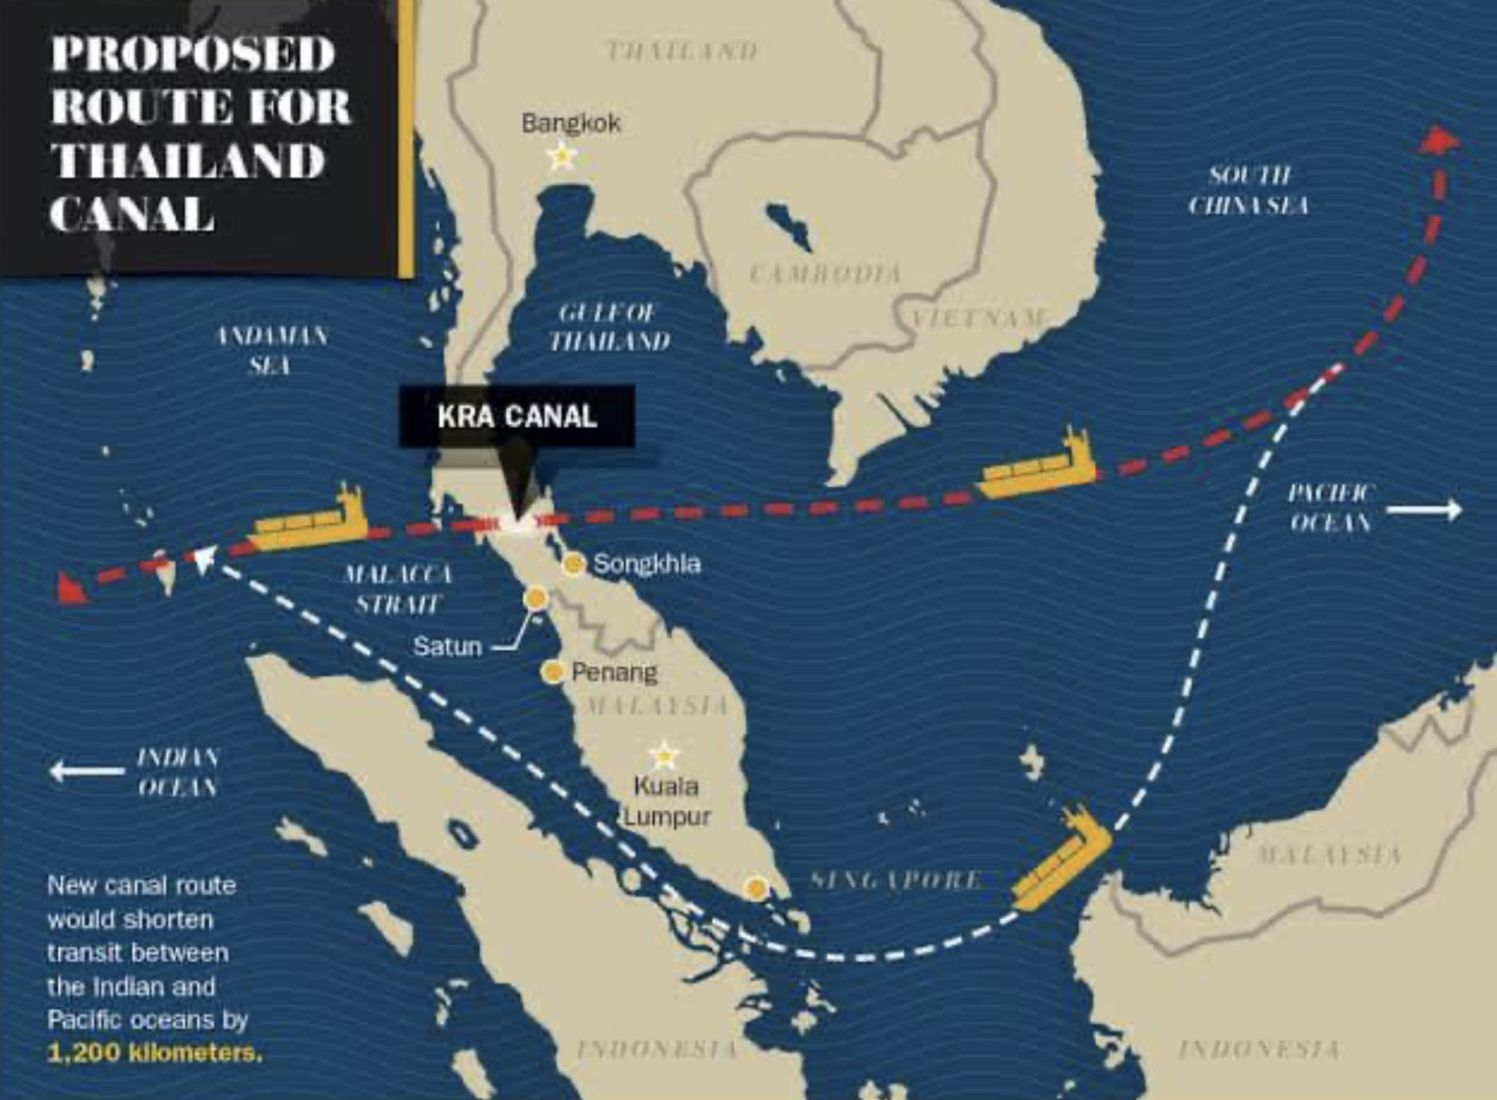 Thai Kra Canal - numbers don't stack up | News by Thaiger